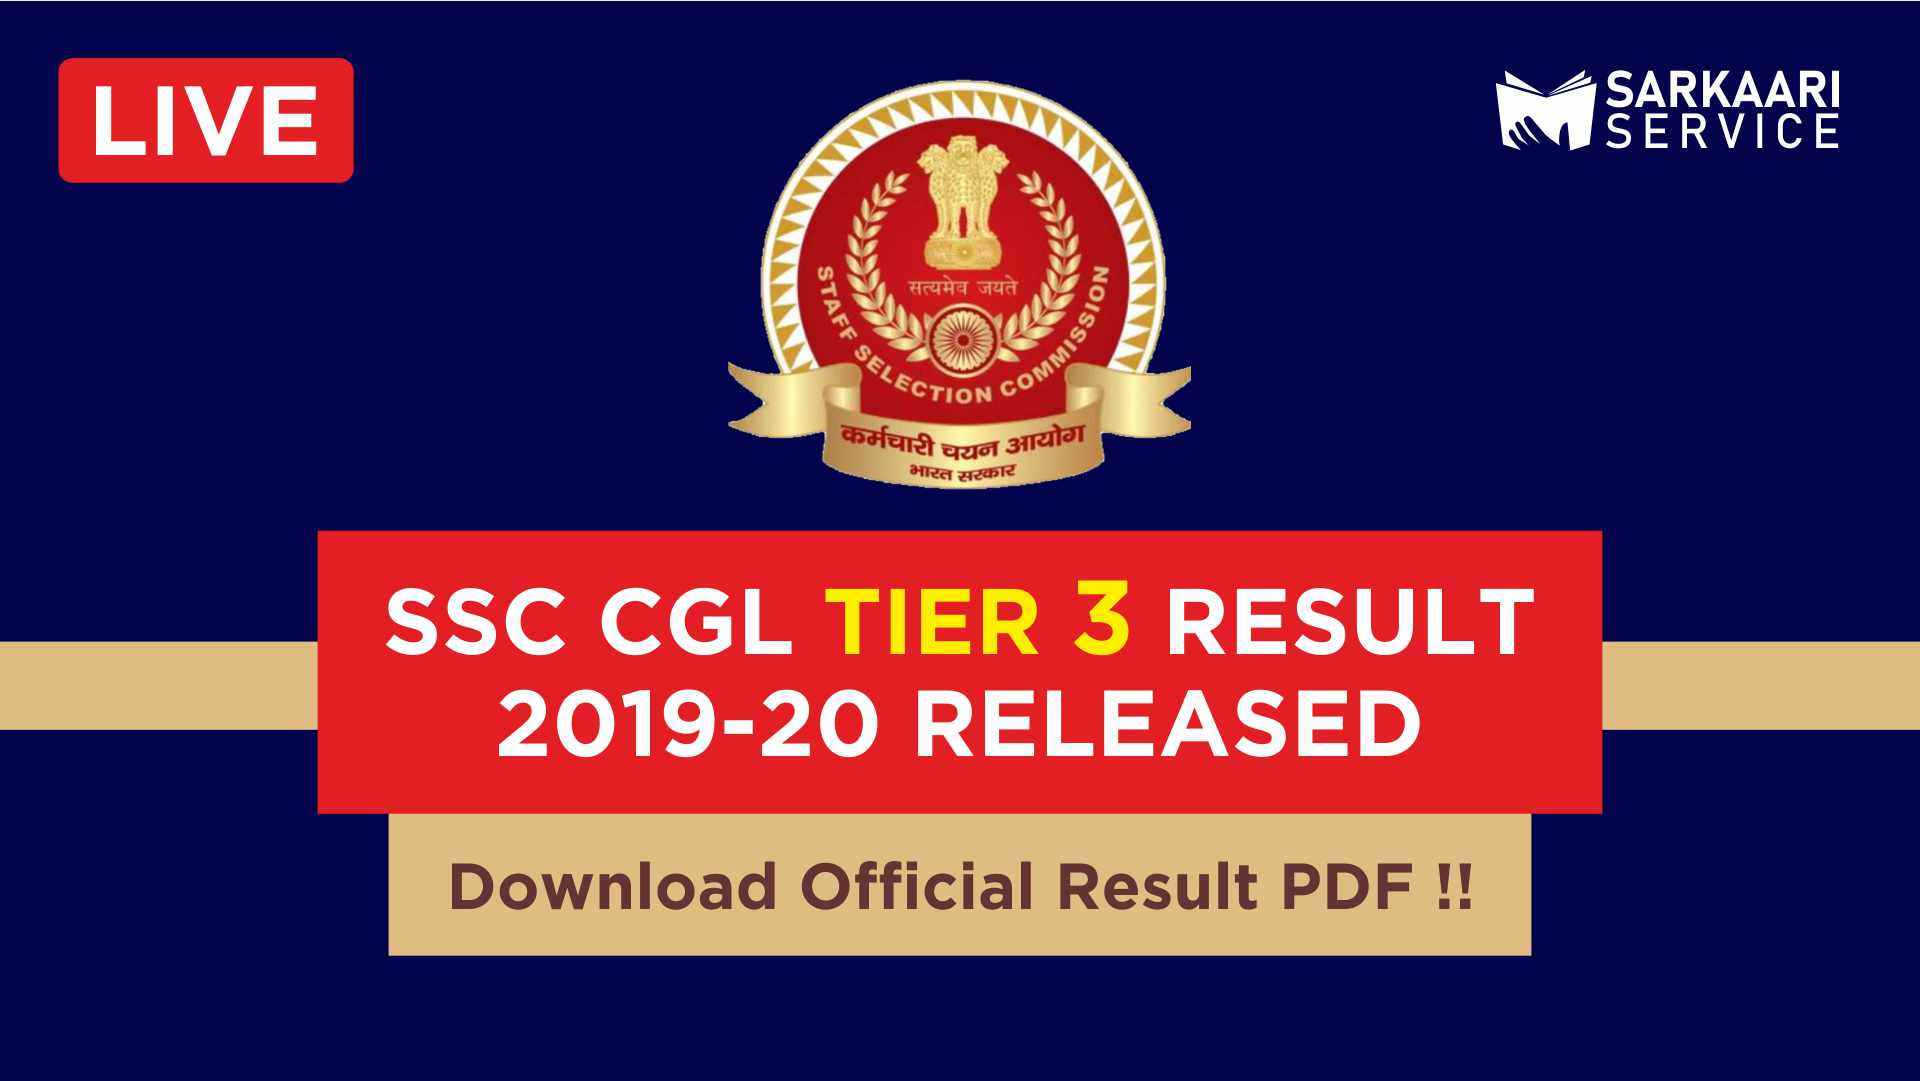 ssc cgl tier 3 RESULT 2019